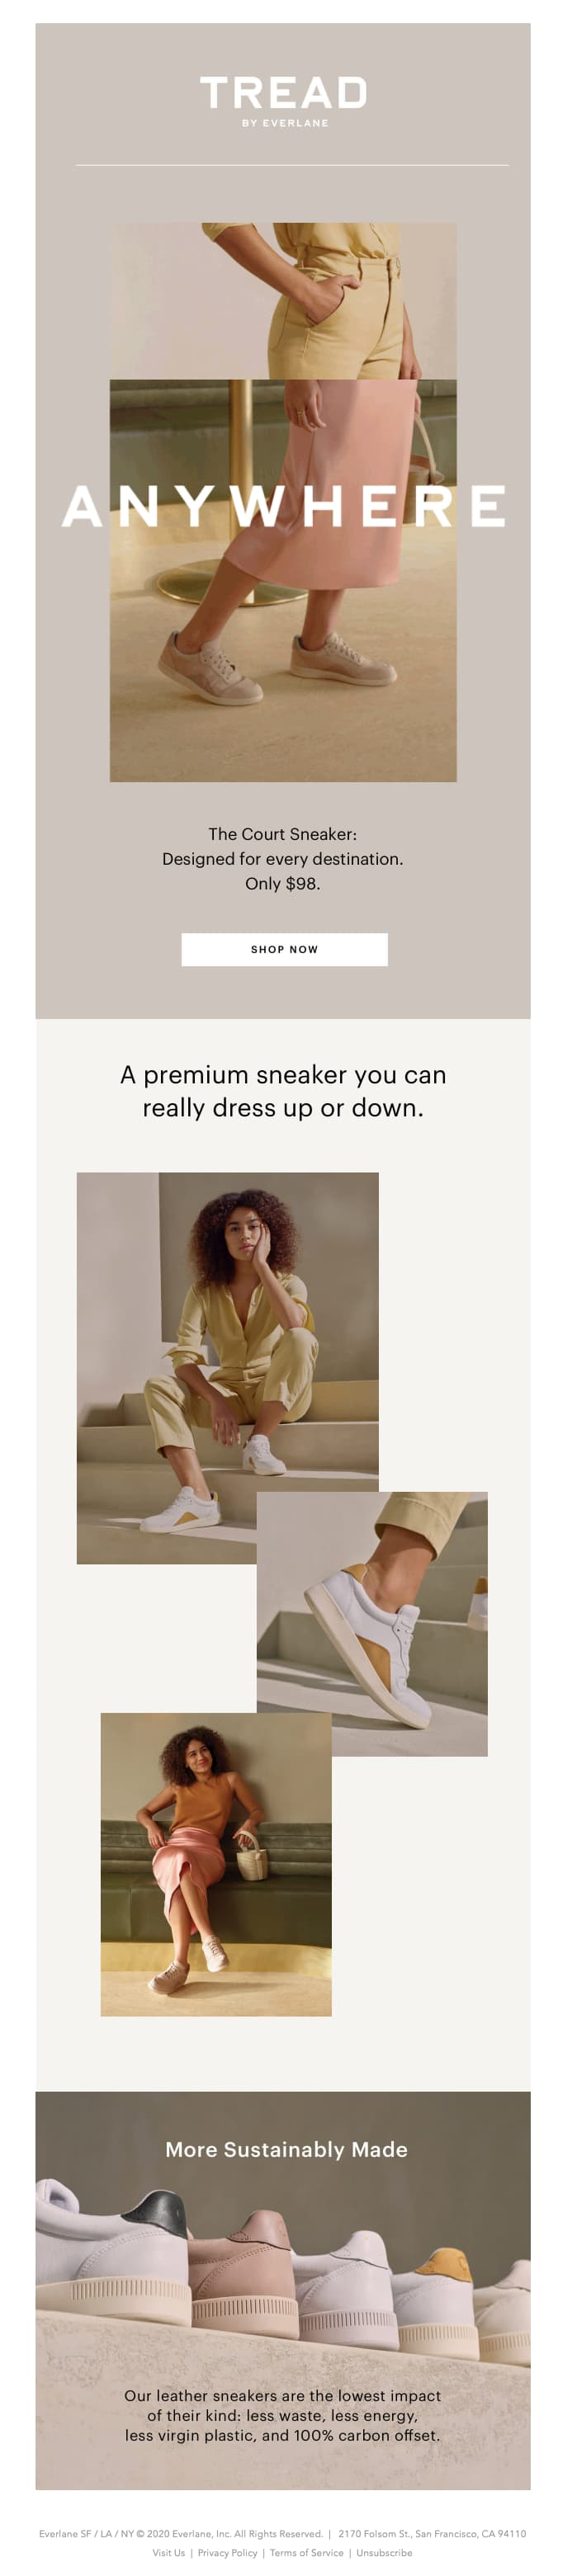 everlane court sneaker product line announcement email